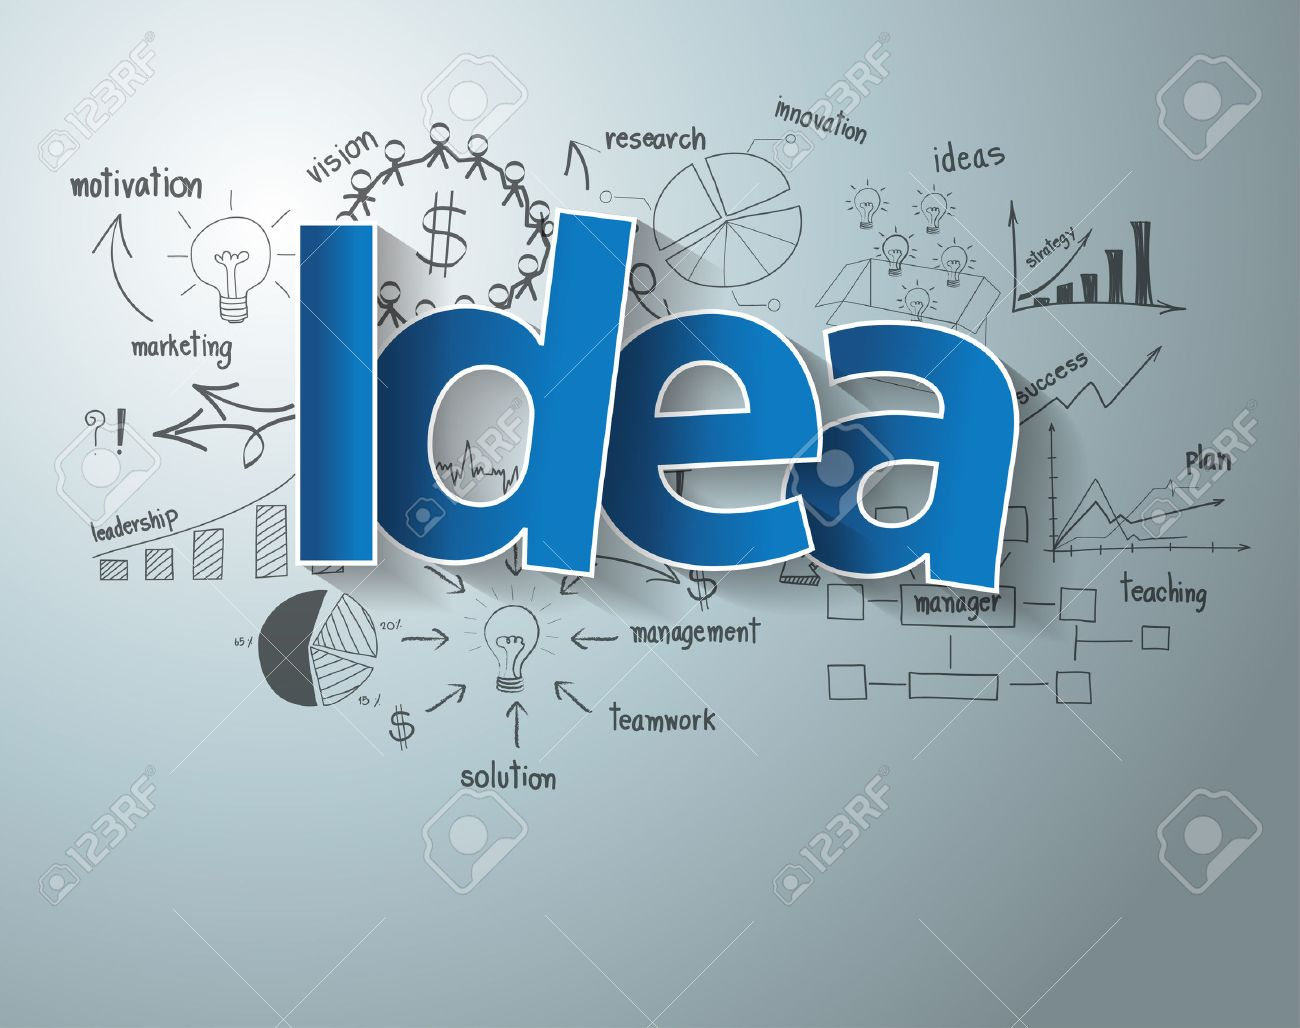 With creative drawing charts and graphs business success strategy plan idea - 32606324